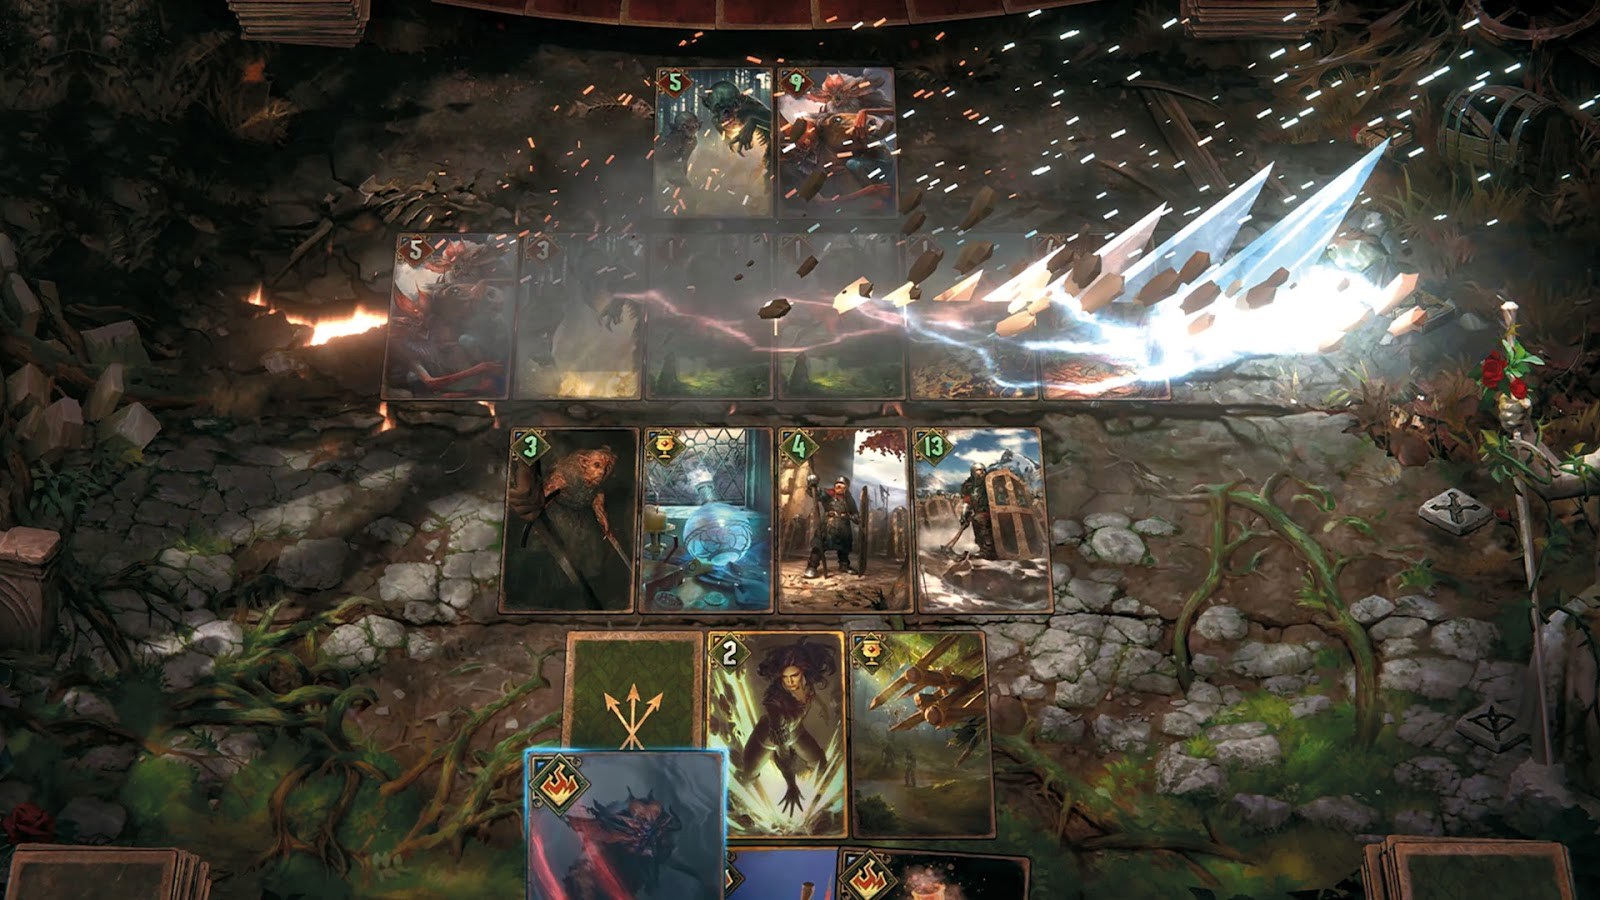 [Review] Gwent : The Witcher Card Game เกมการ์ดจากซีรีส์ The Witcher 13